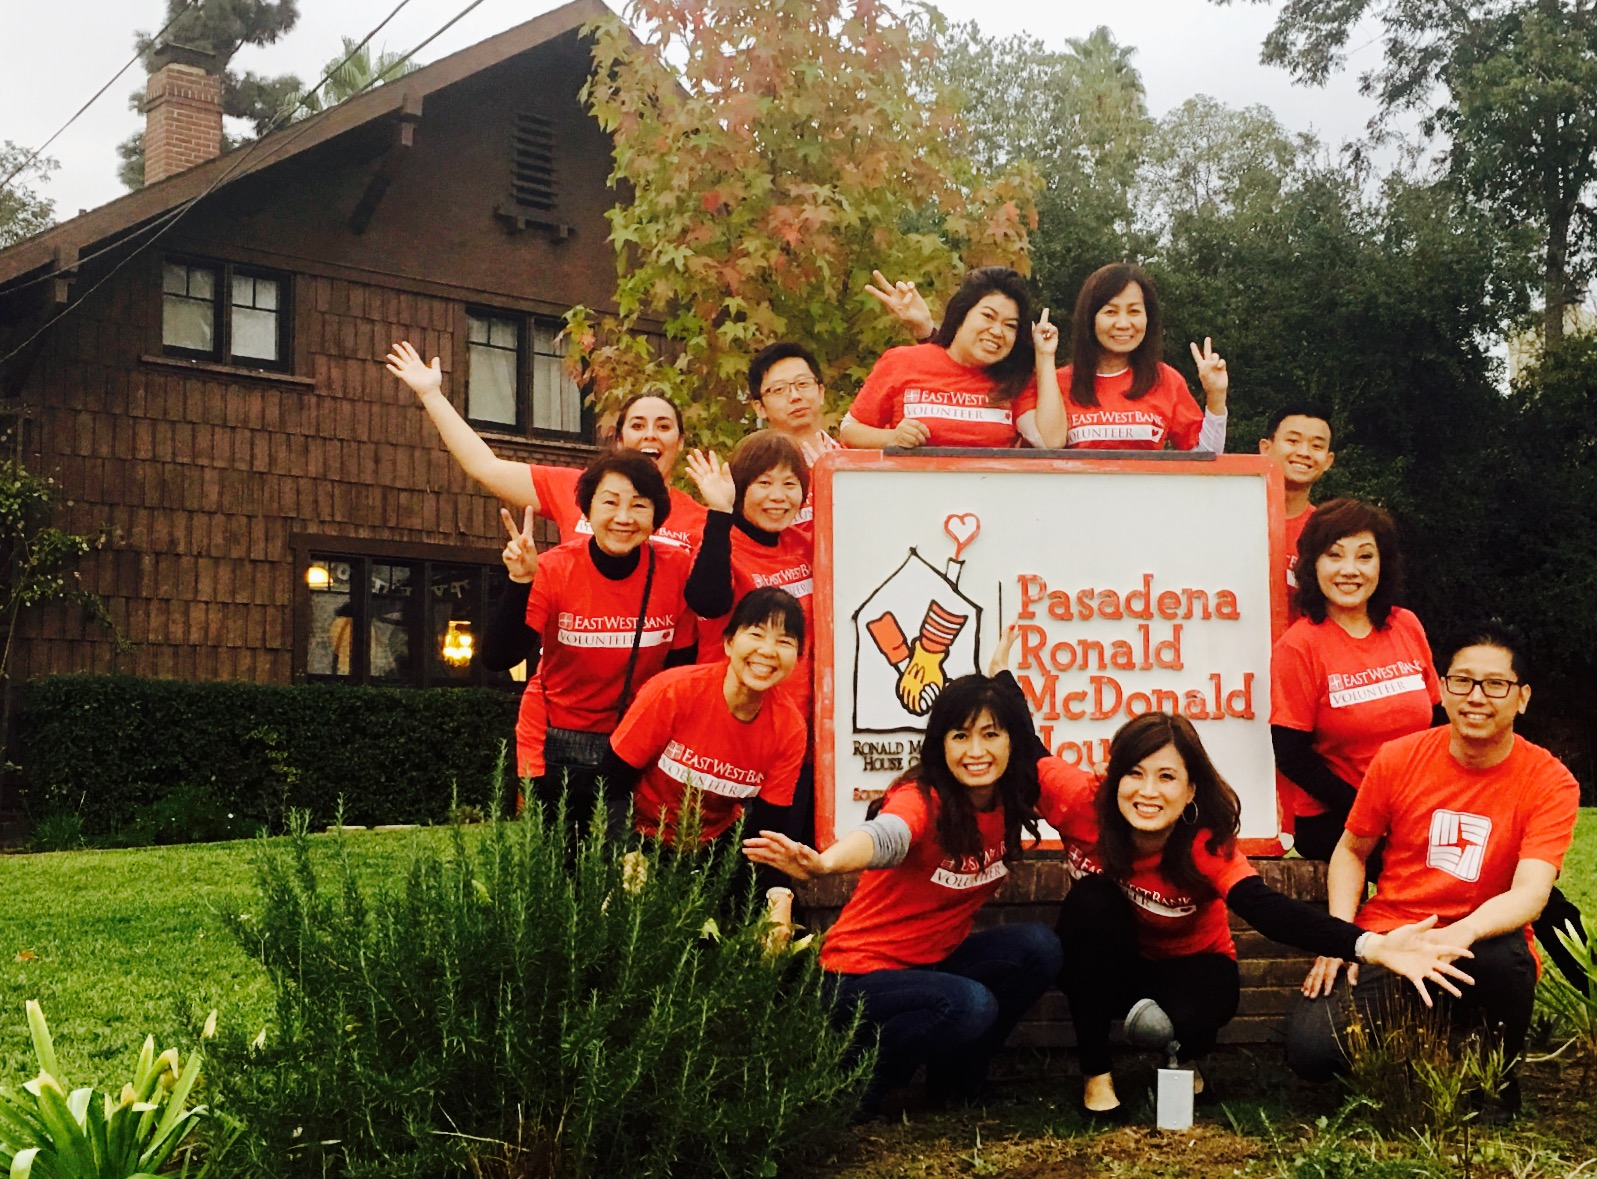 East West Bank employees smile optimistically outside Ronald McDonald House